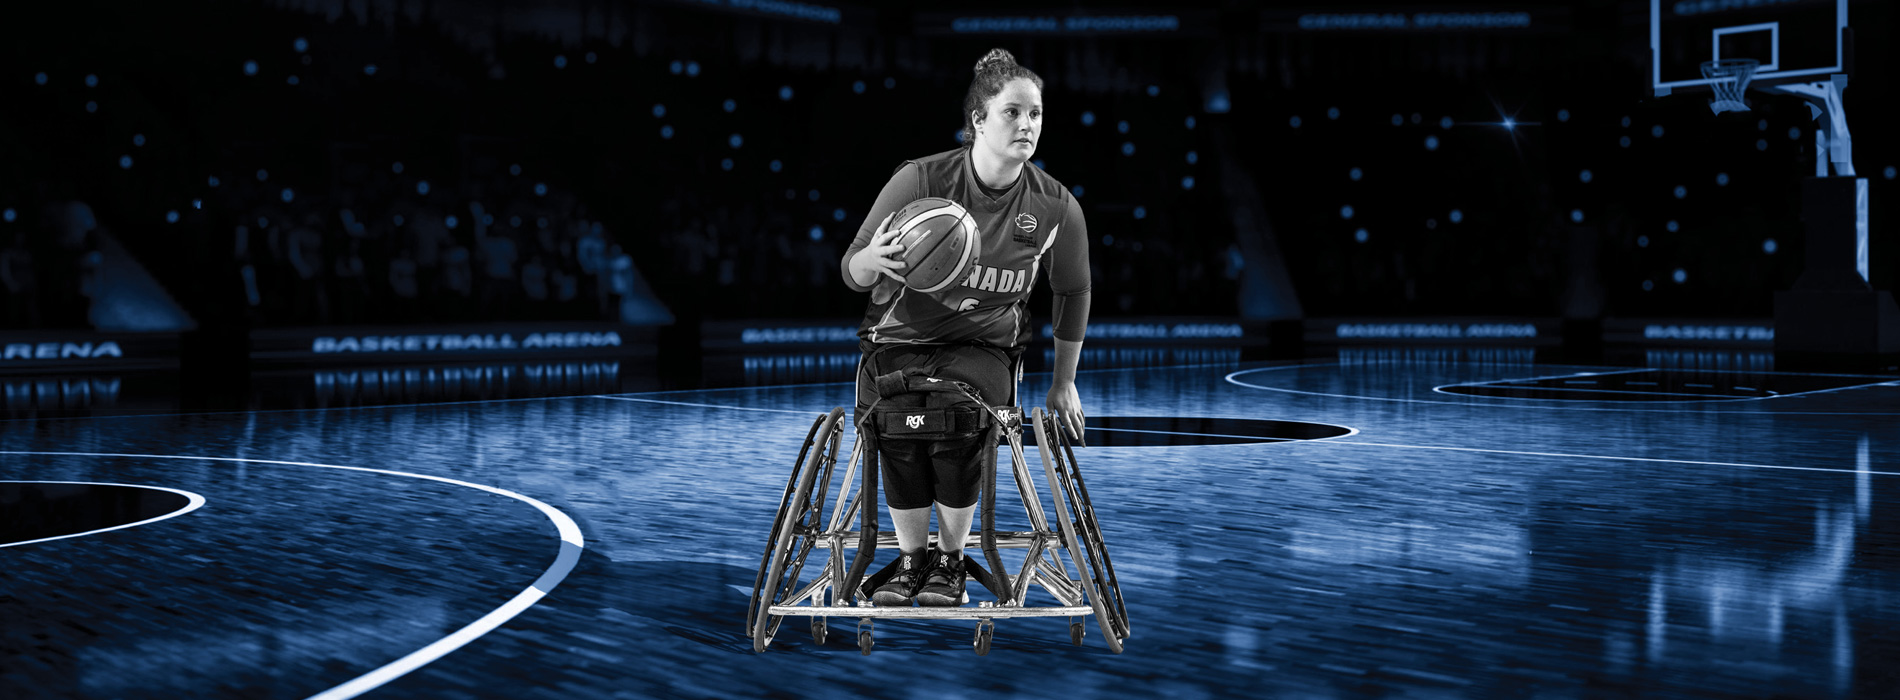 Wheelchair Basketball Athlete - Arinn Young